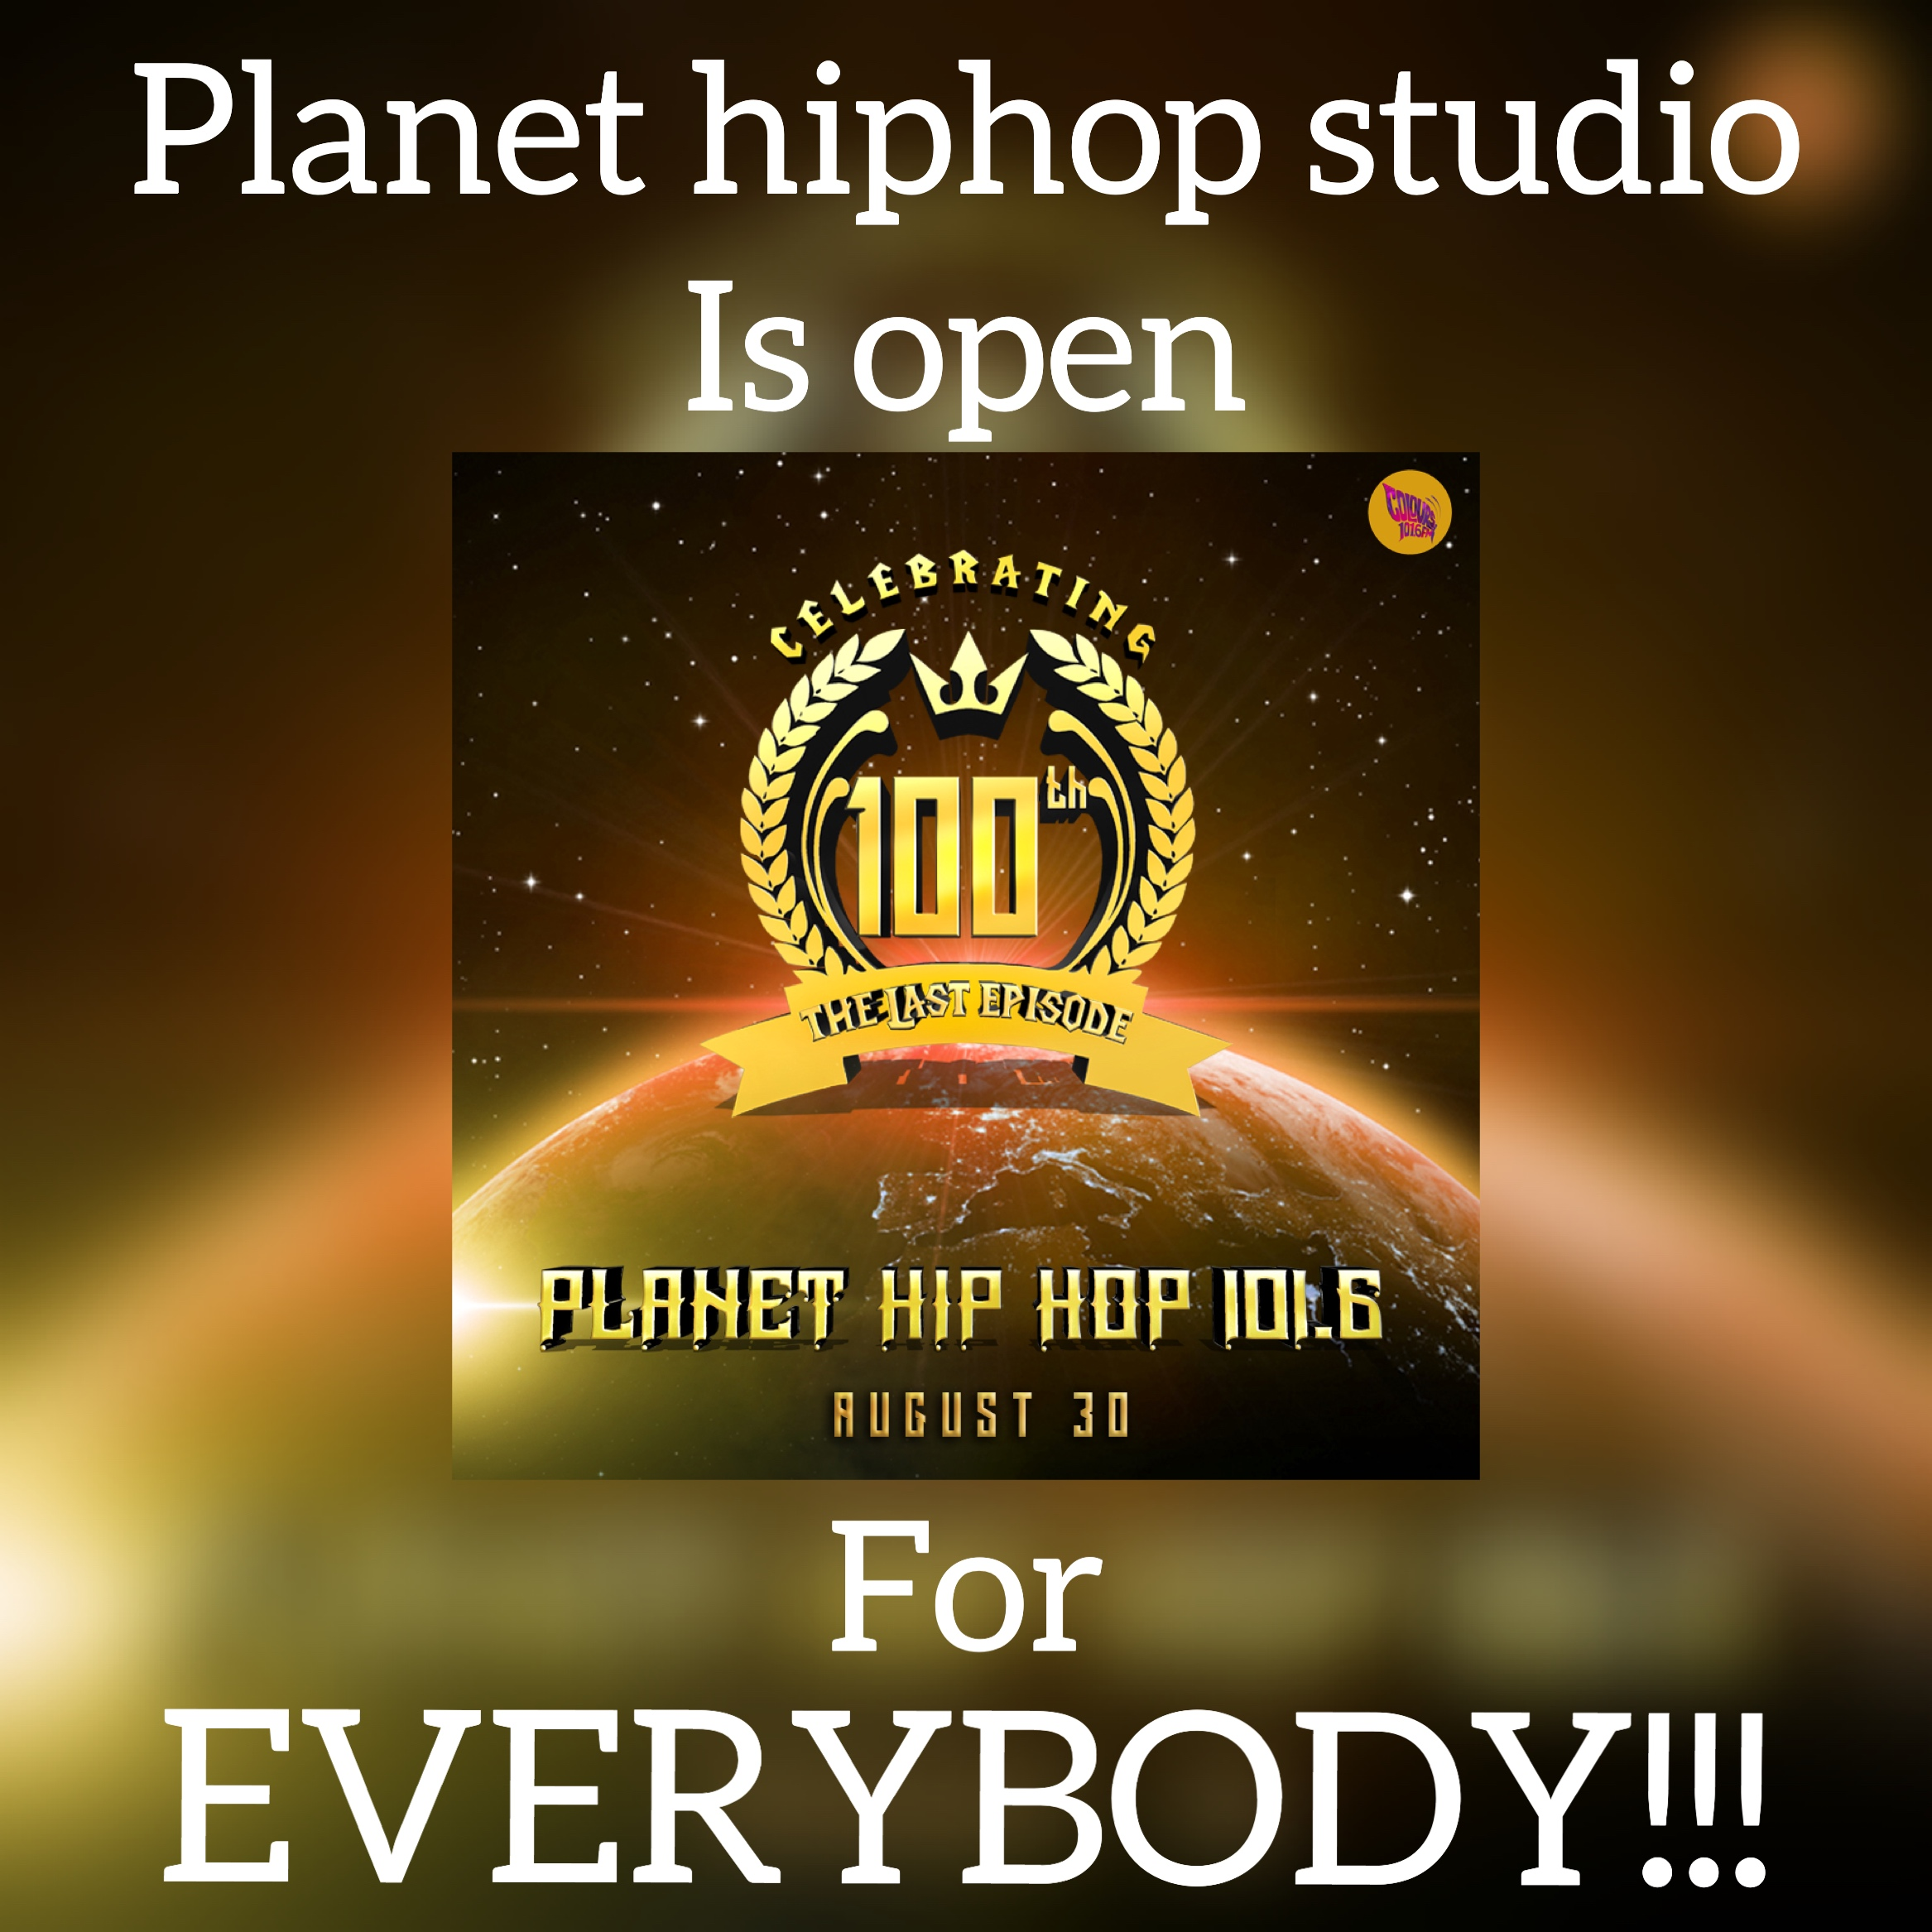 Planet hiphop studio is open for all on 30th August.